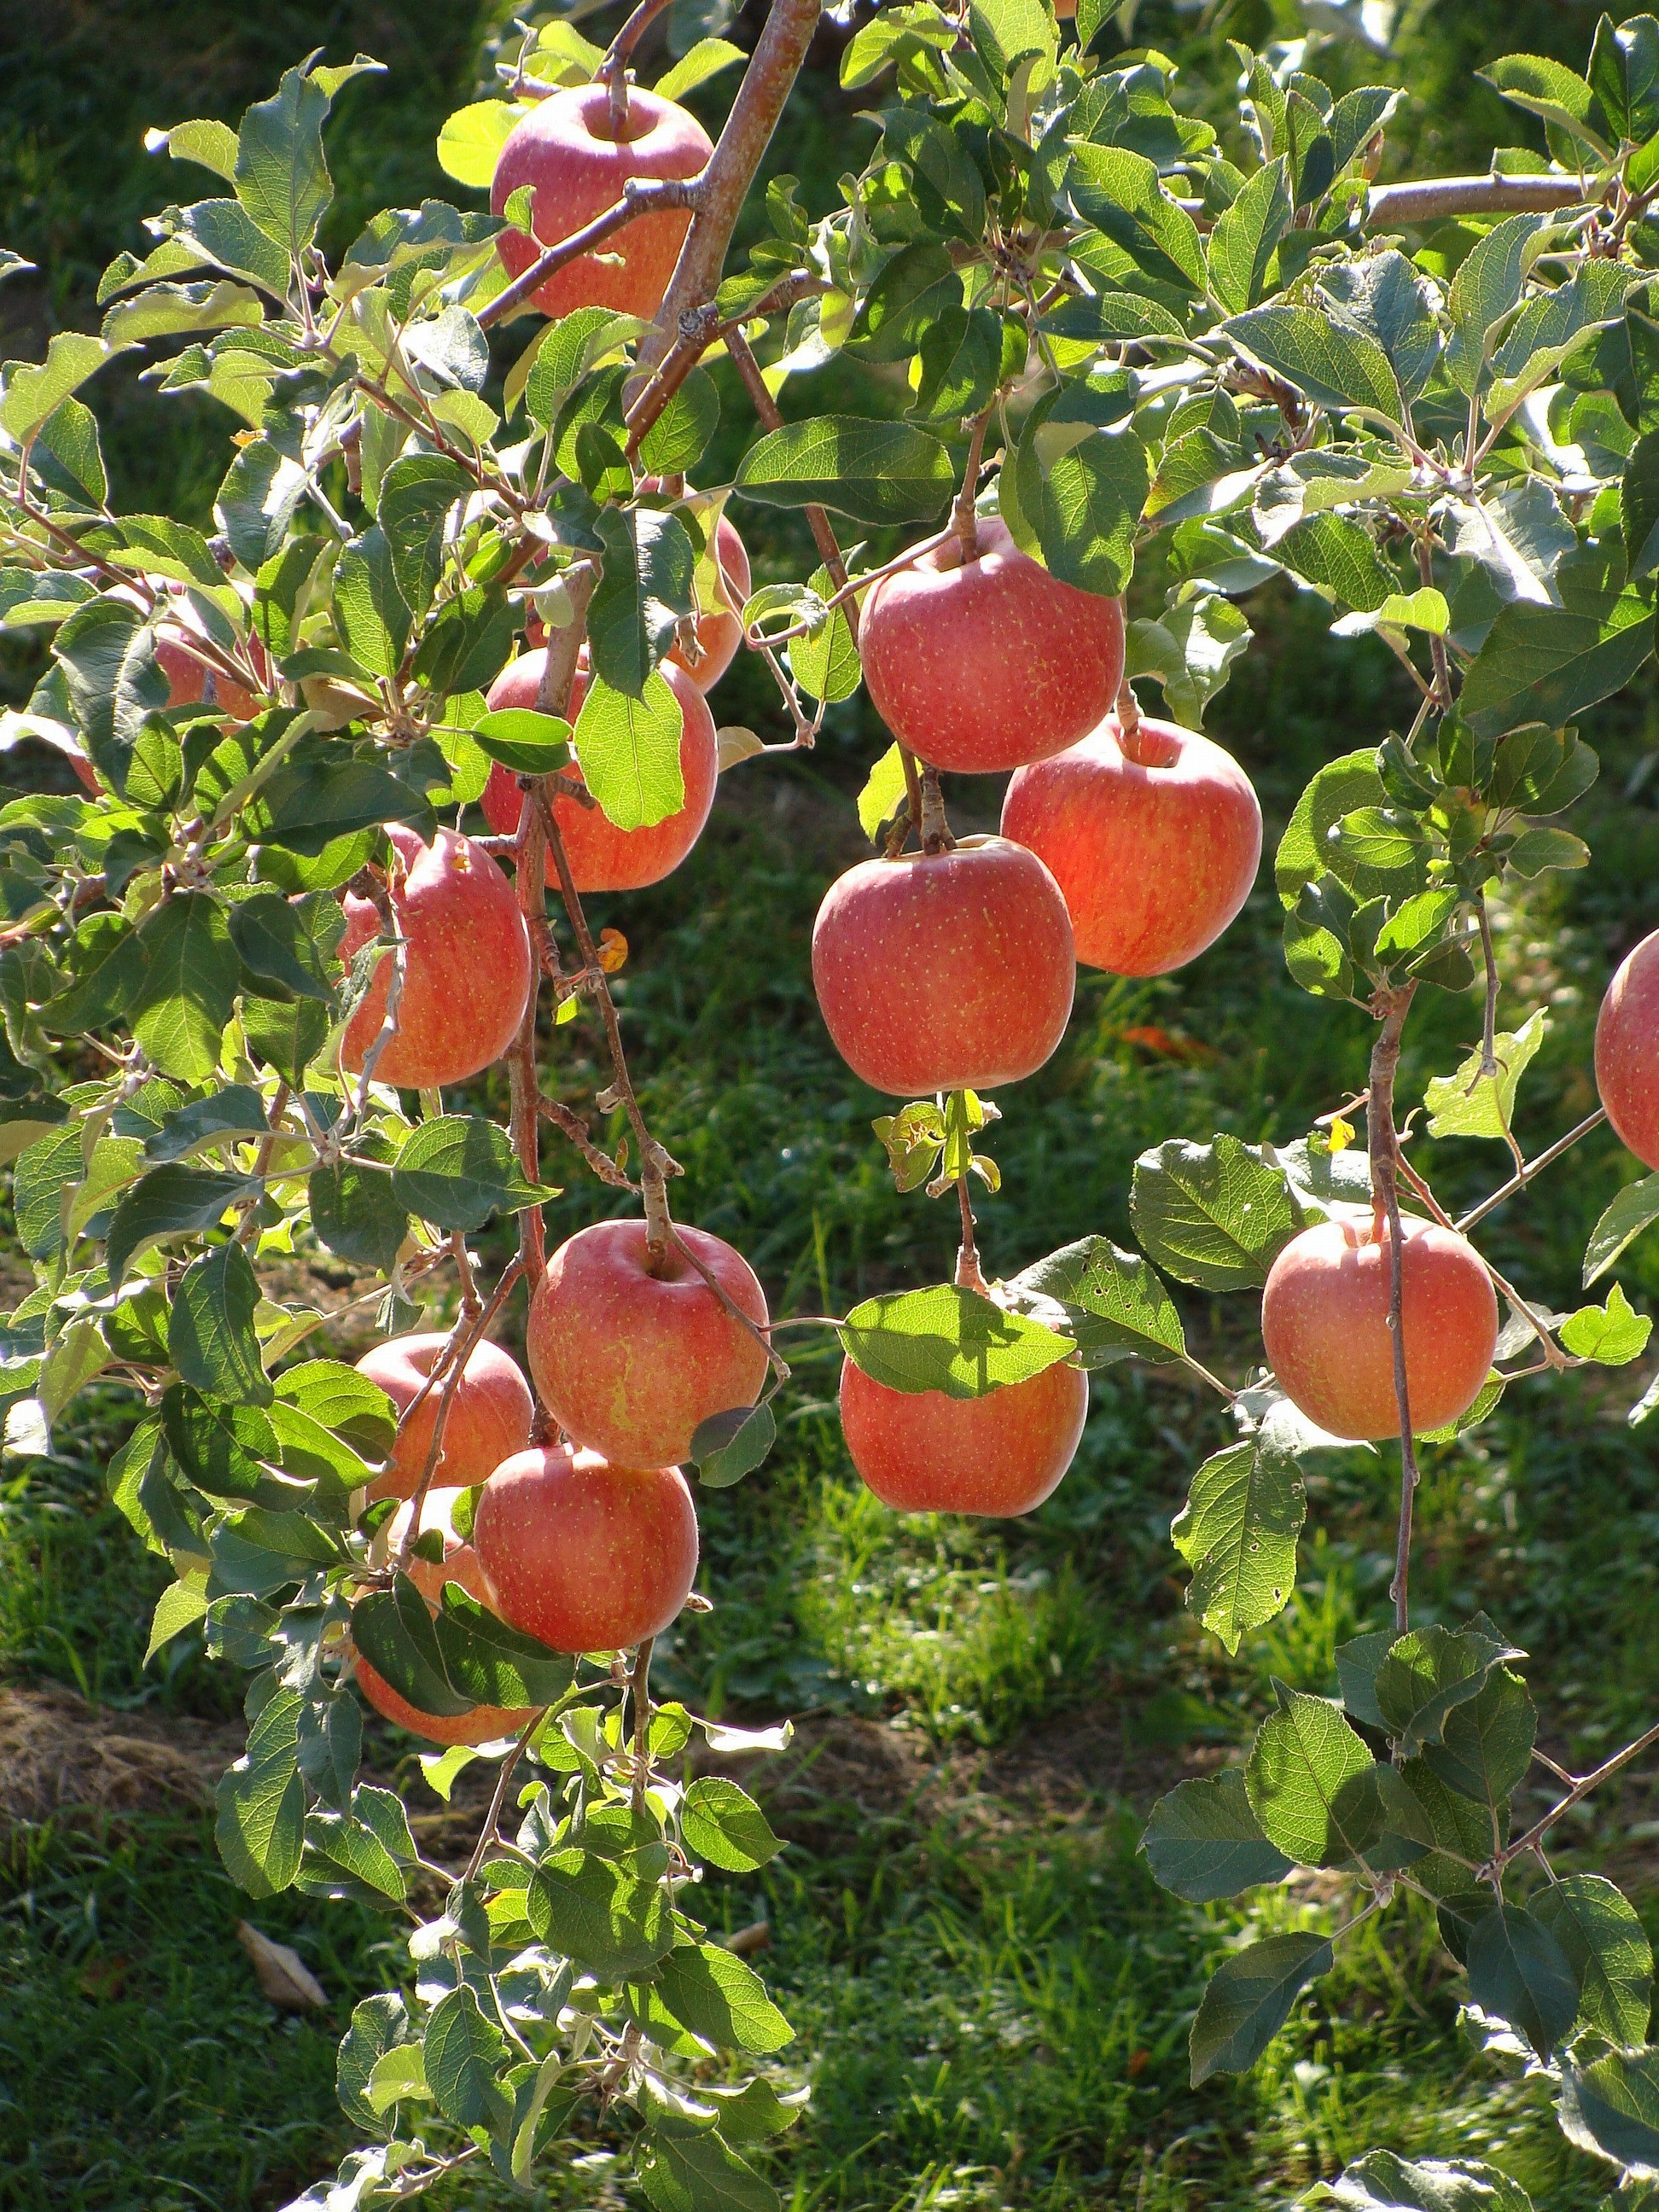 Pictures Of Fuji Apple Trees In State Of Texas 53